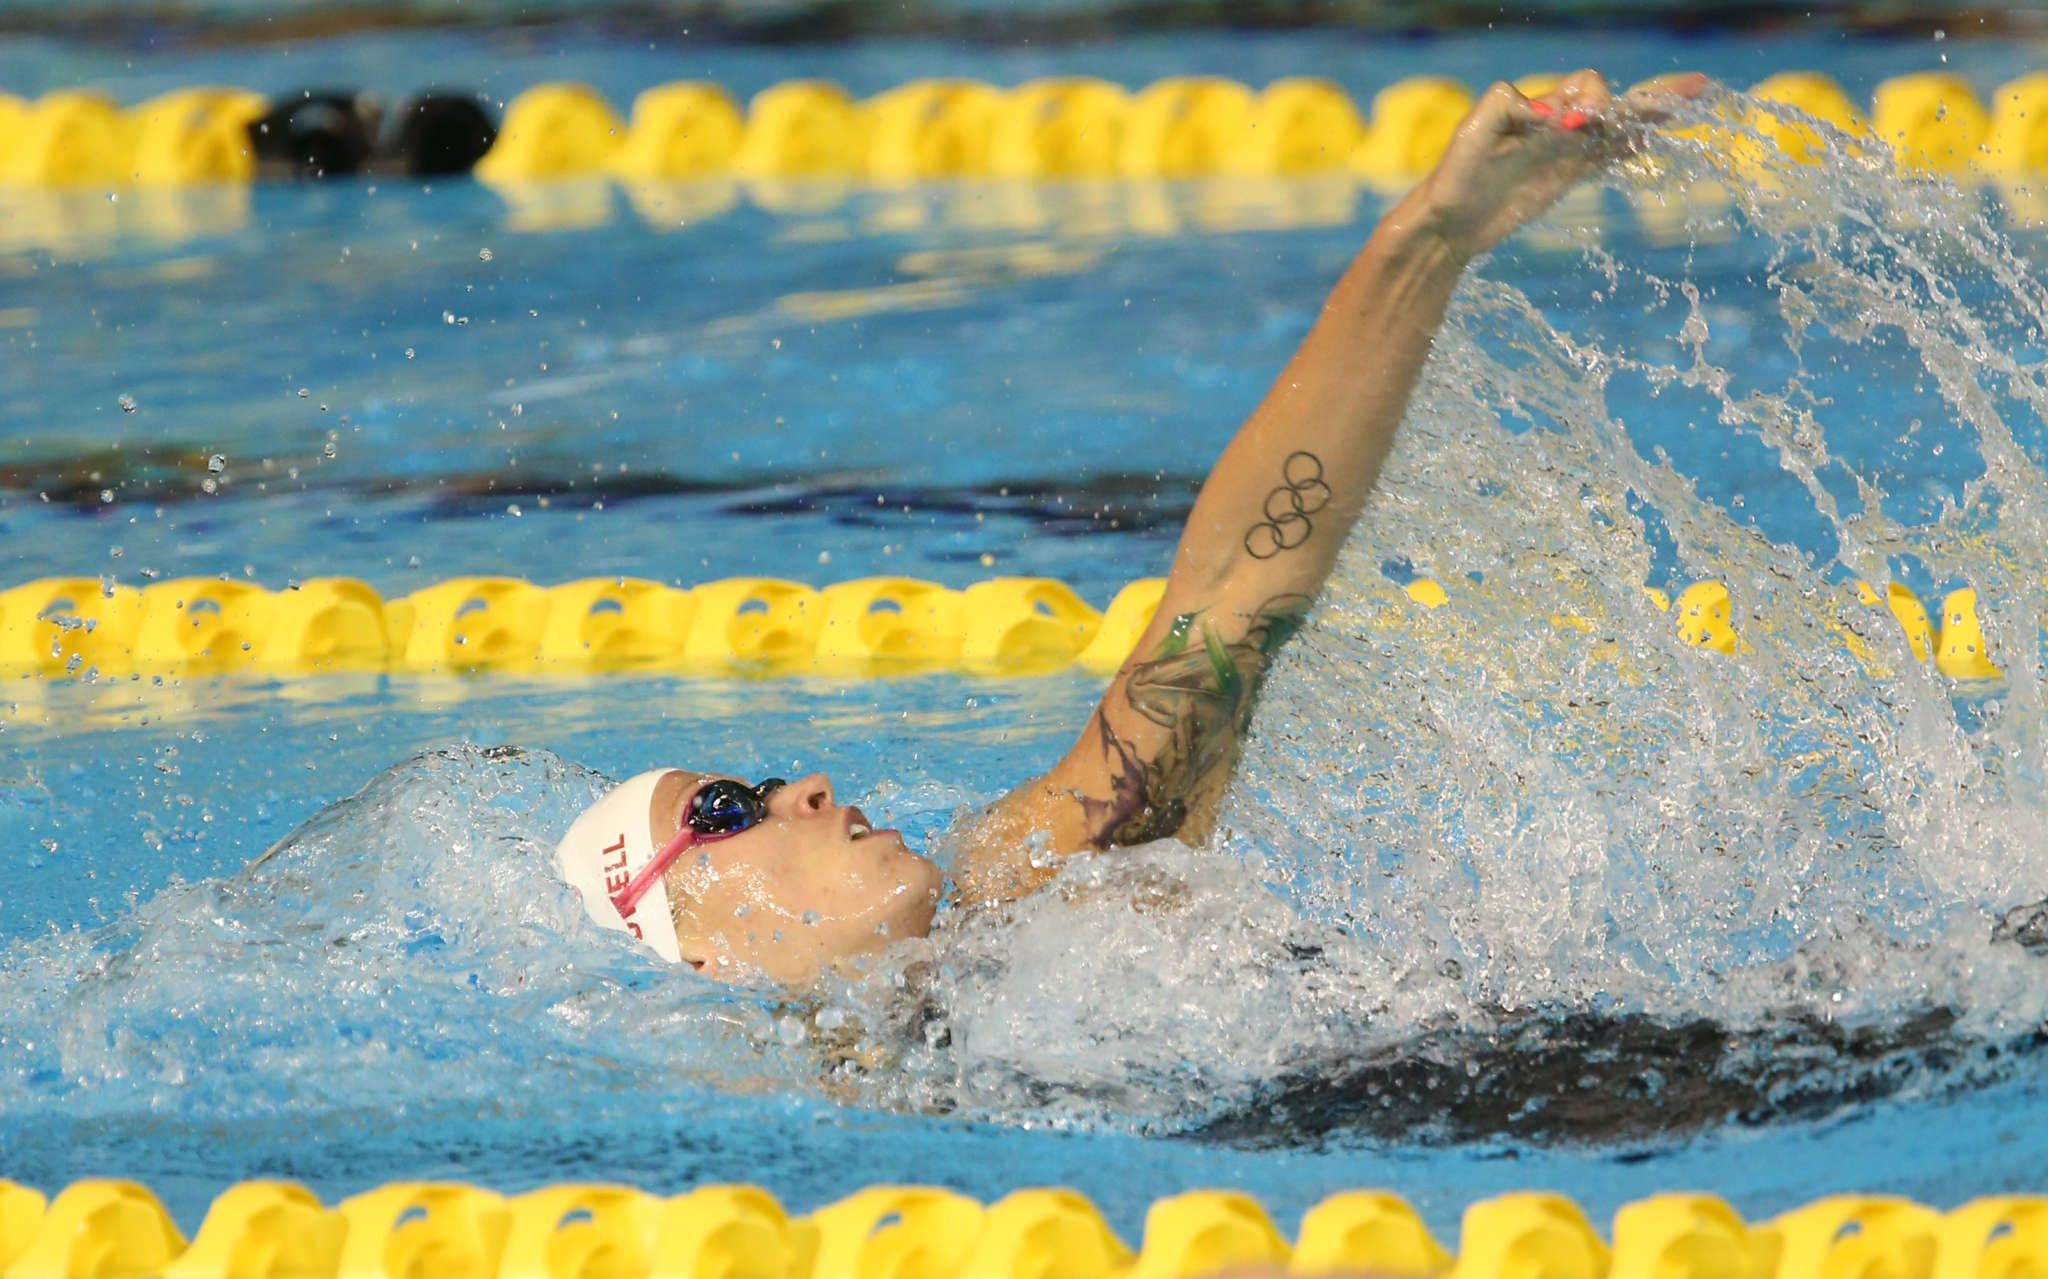 Backstroker Hilary Caldwell A Work Of Art In The Pool Swimming Canada